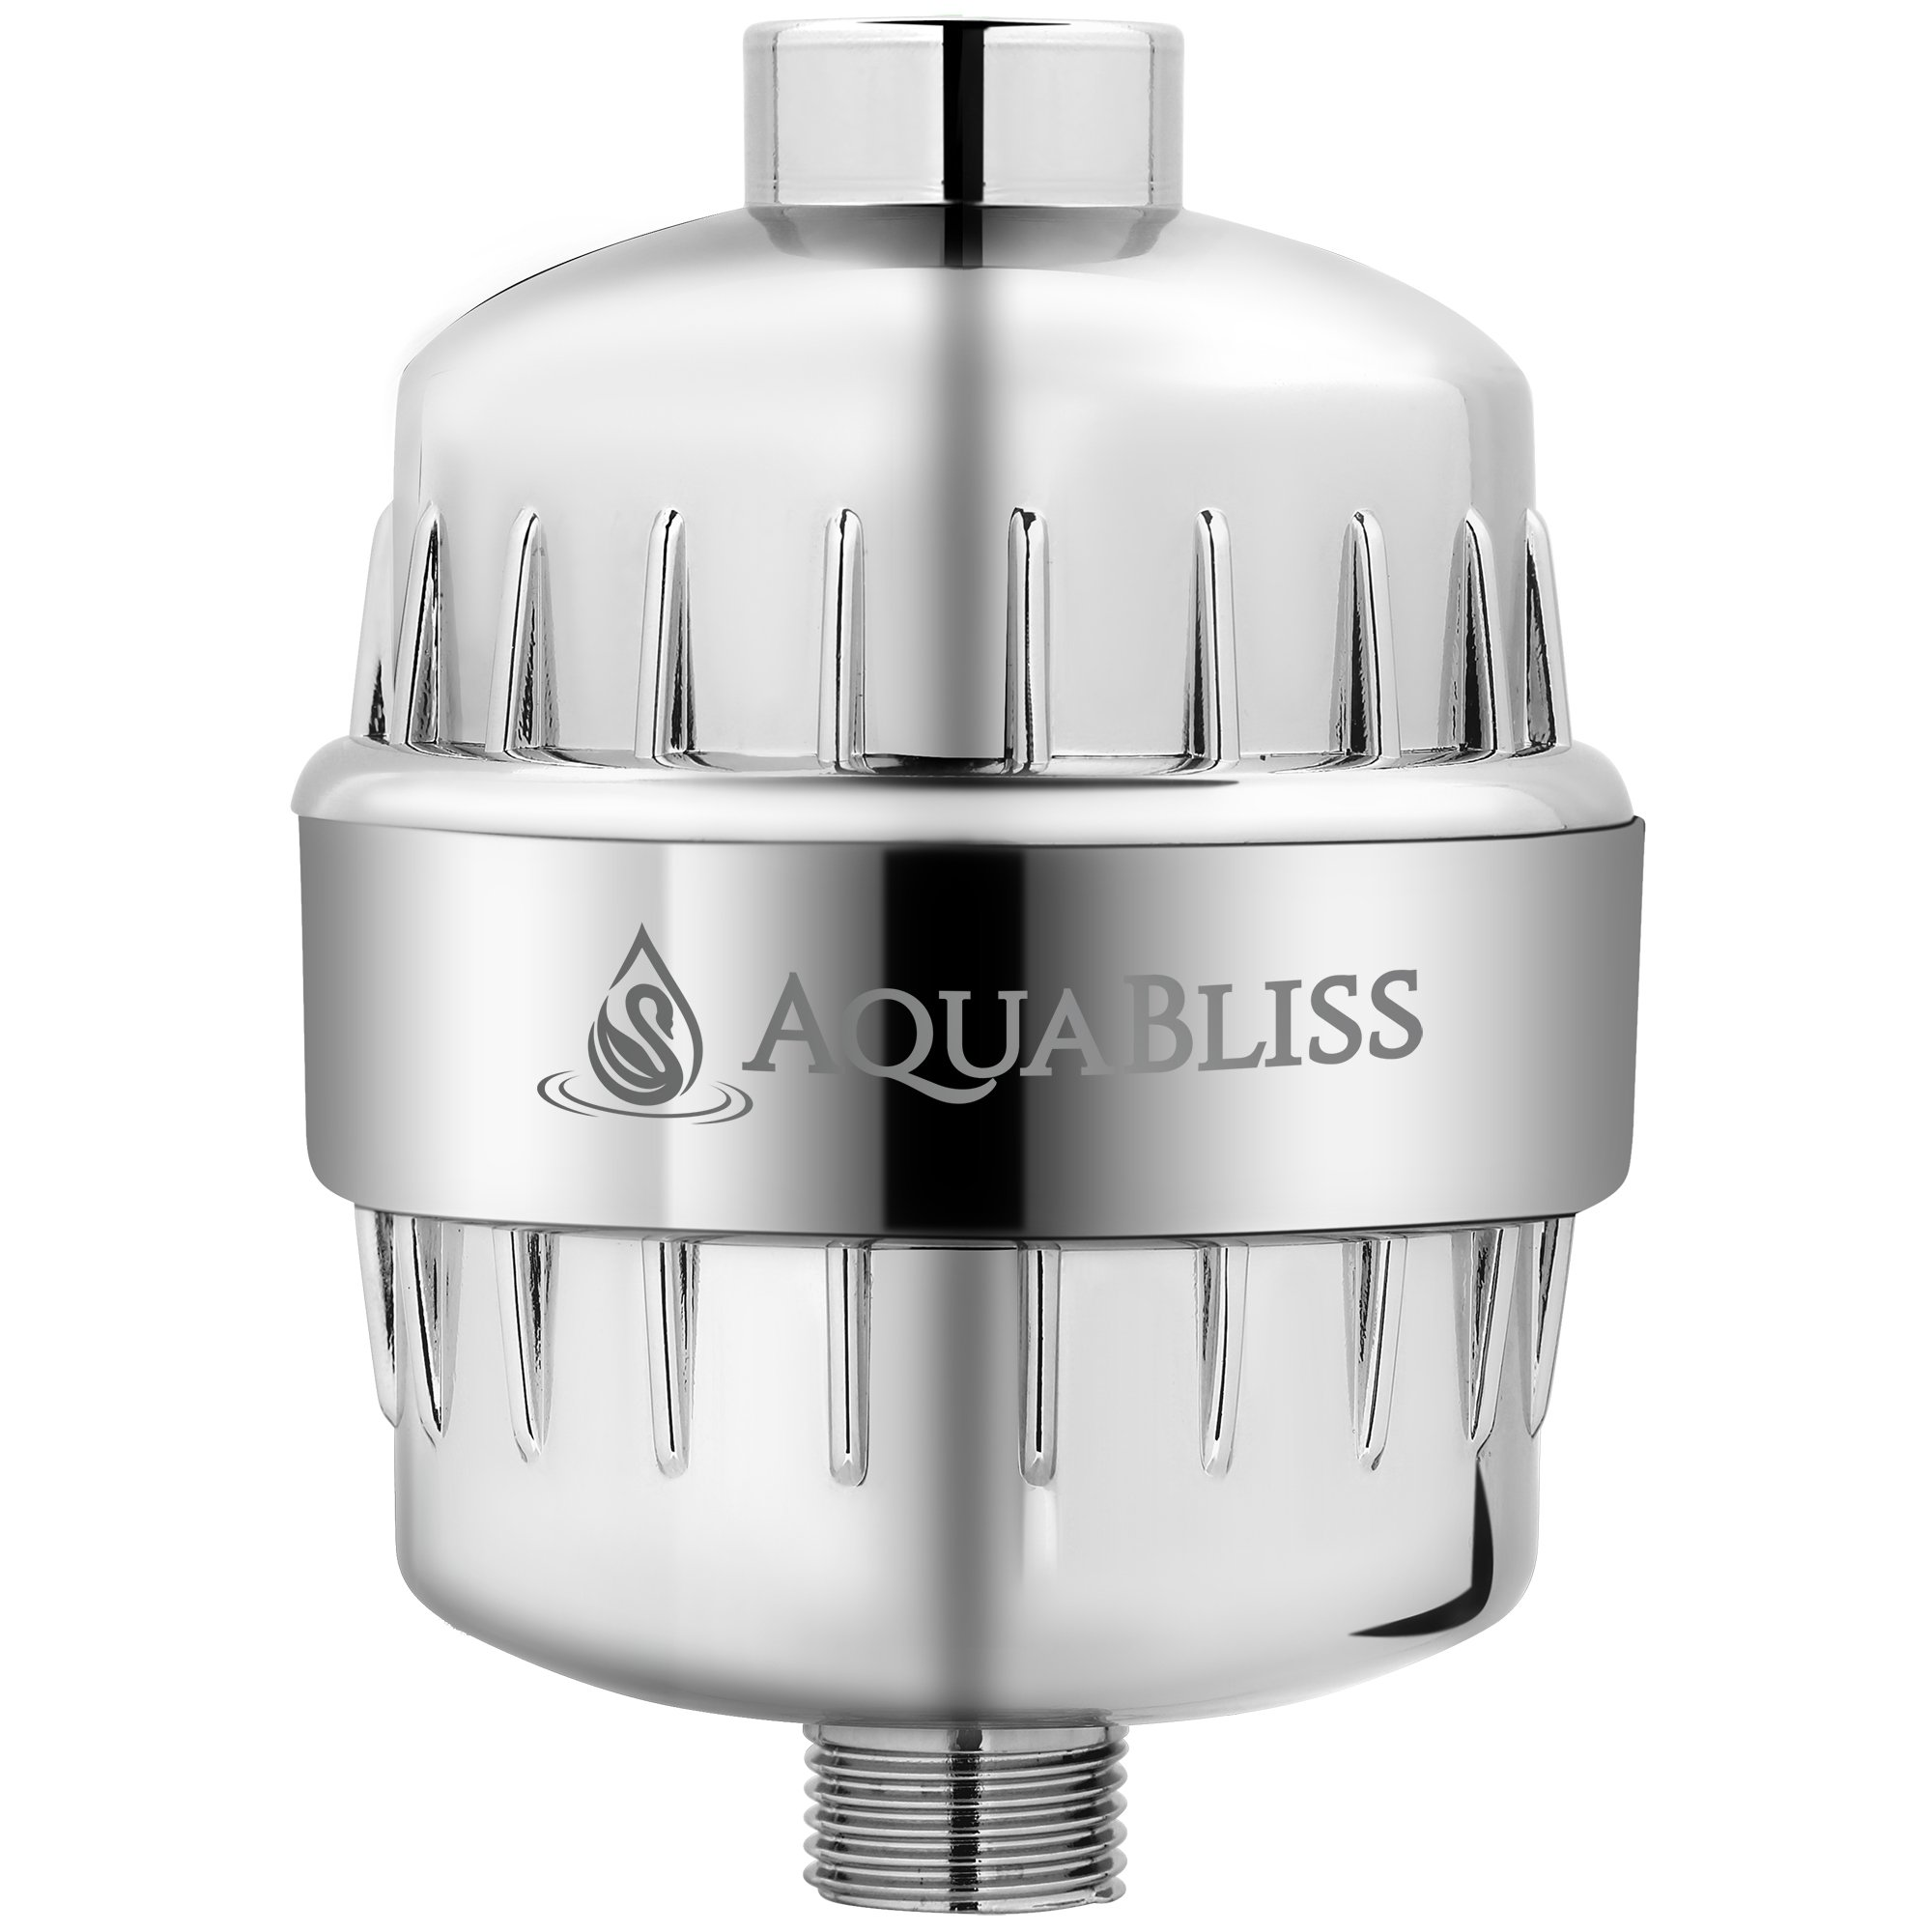 AquaBliss High Output 12-Stage Shower Filter - Reduces Dry Itchy Skin, Dandruff, Eczema, and Dramatically Improves The Condition of Your Skin, Hair and Nails - Chrome (SF100) by AquaBliss